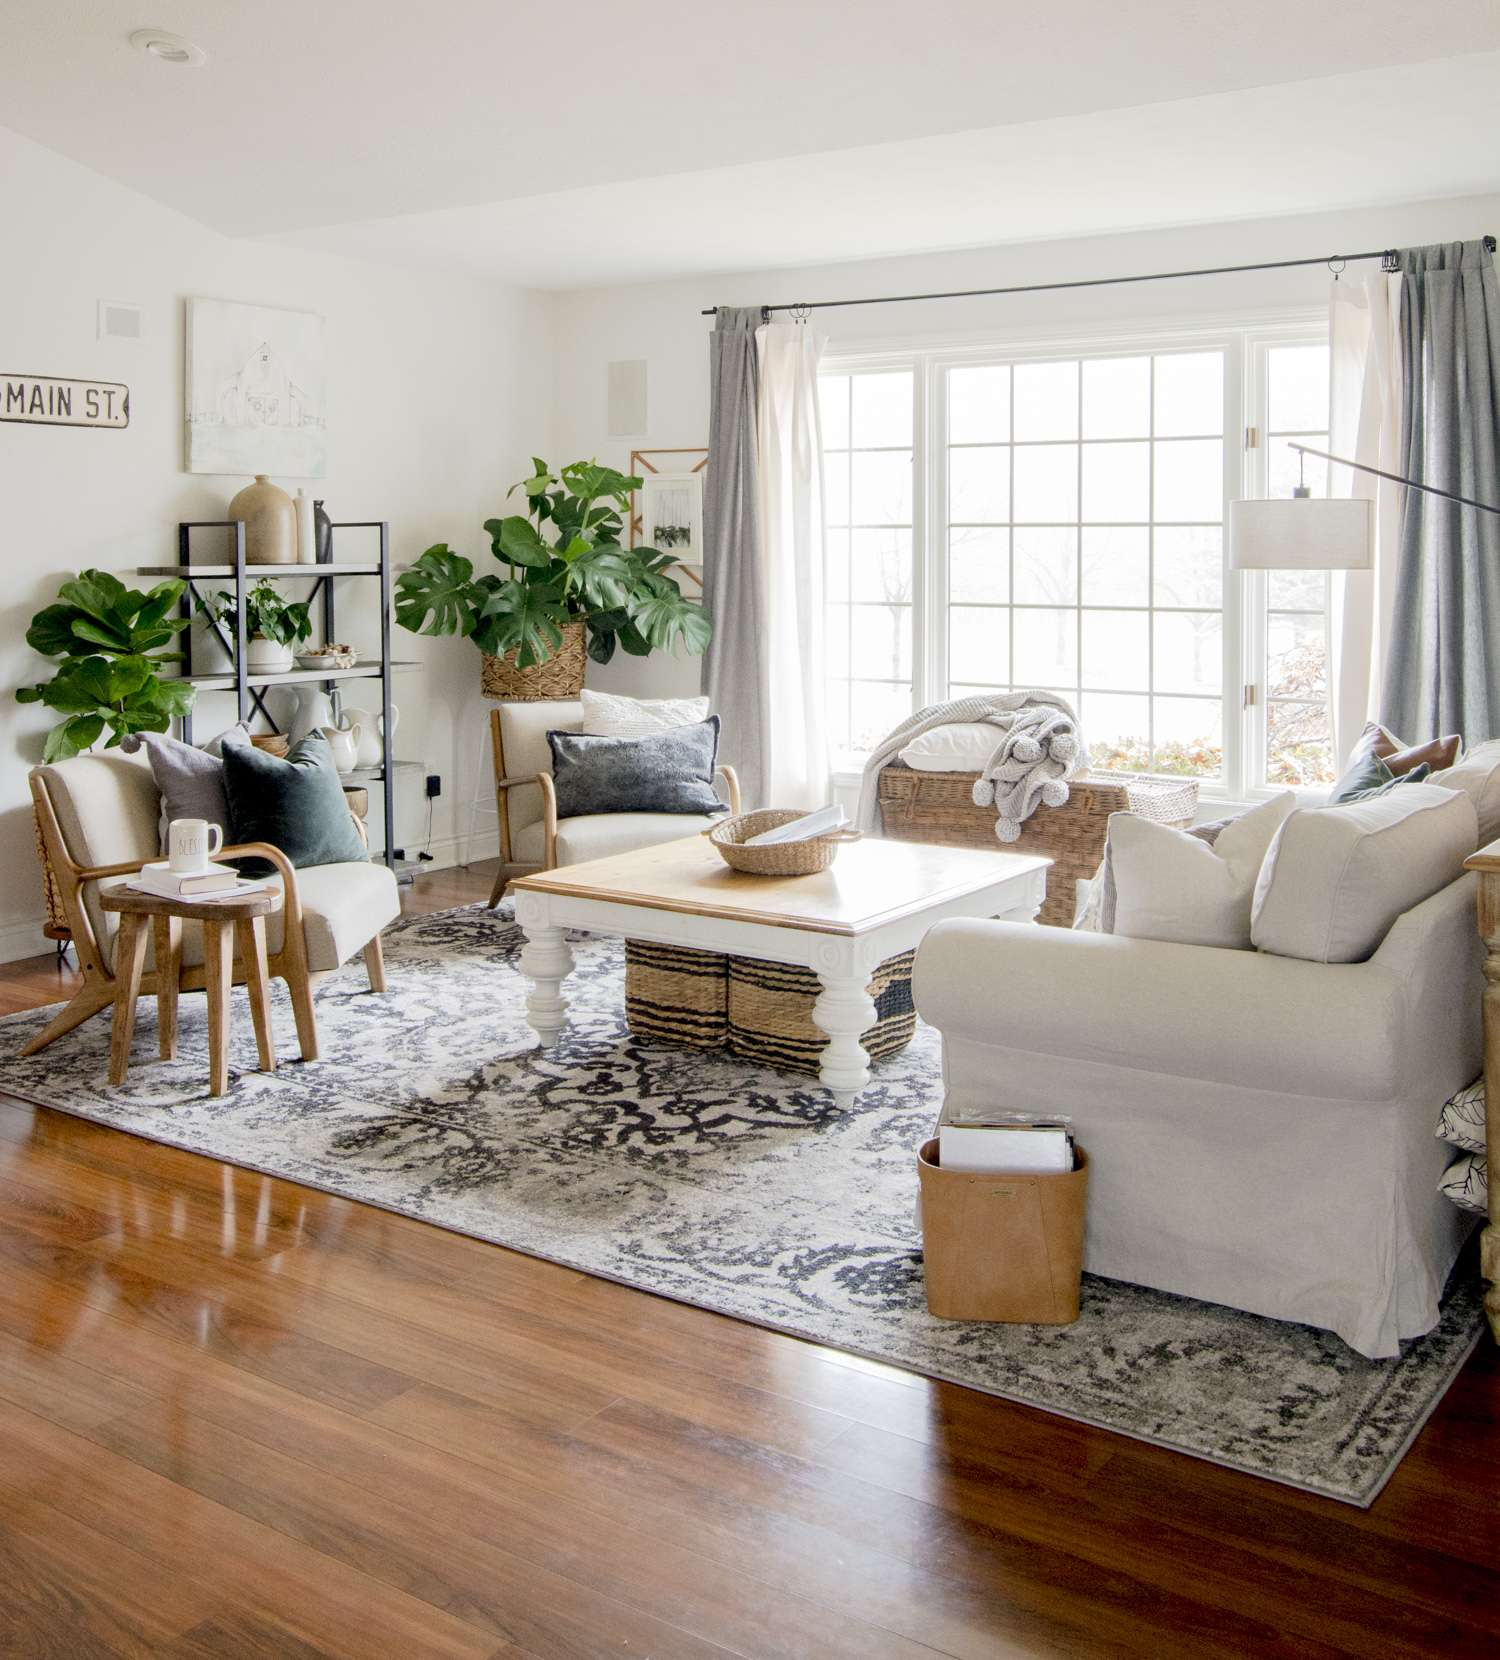 How to Create a Cozy Home with Layers